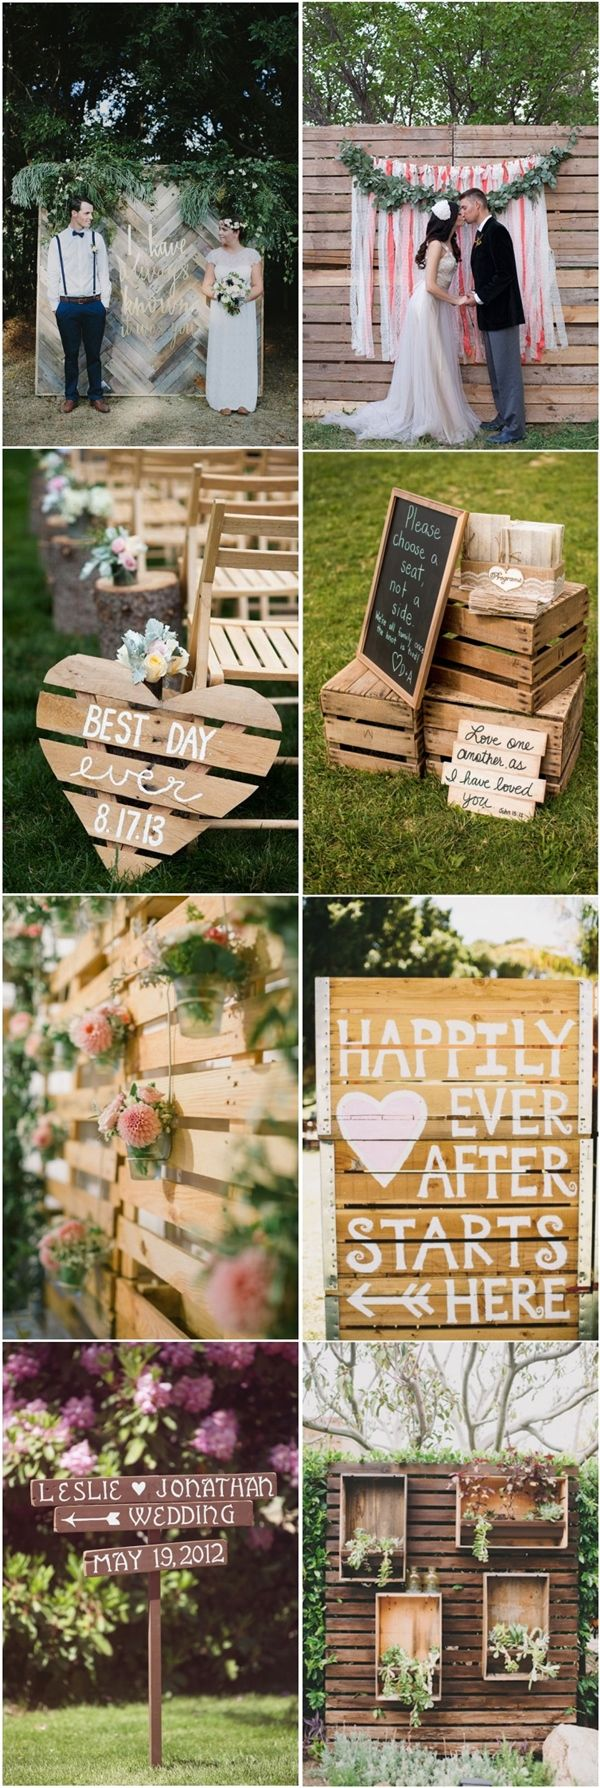 wedding ideas using pallets 35 eco chic ways to use rustic wood pallets in your 28338